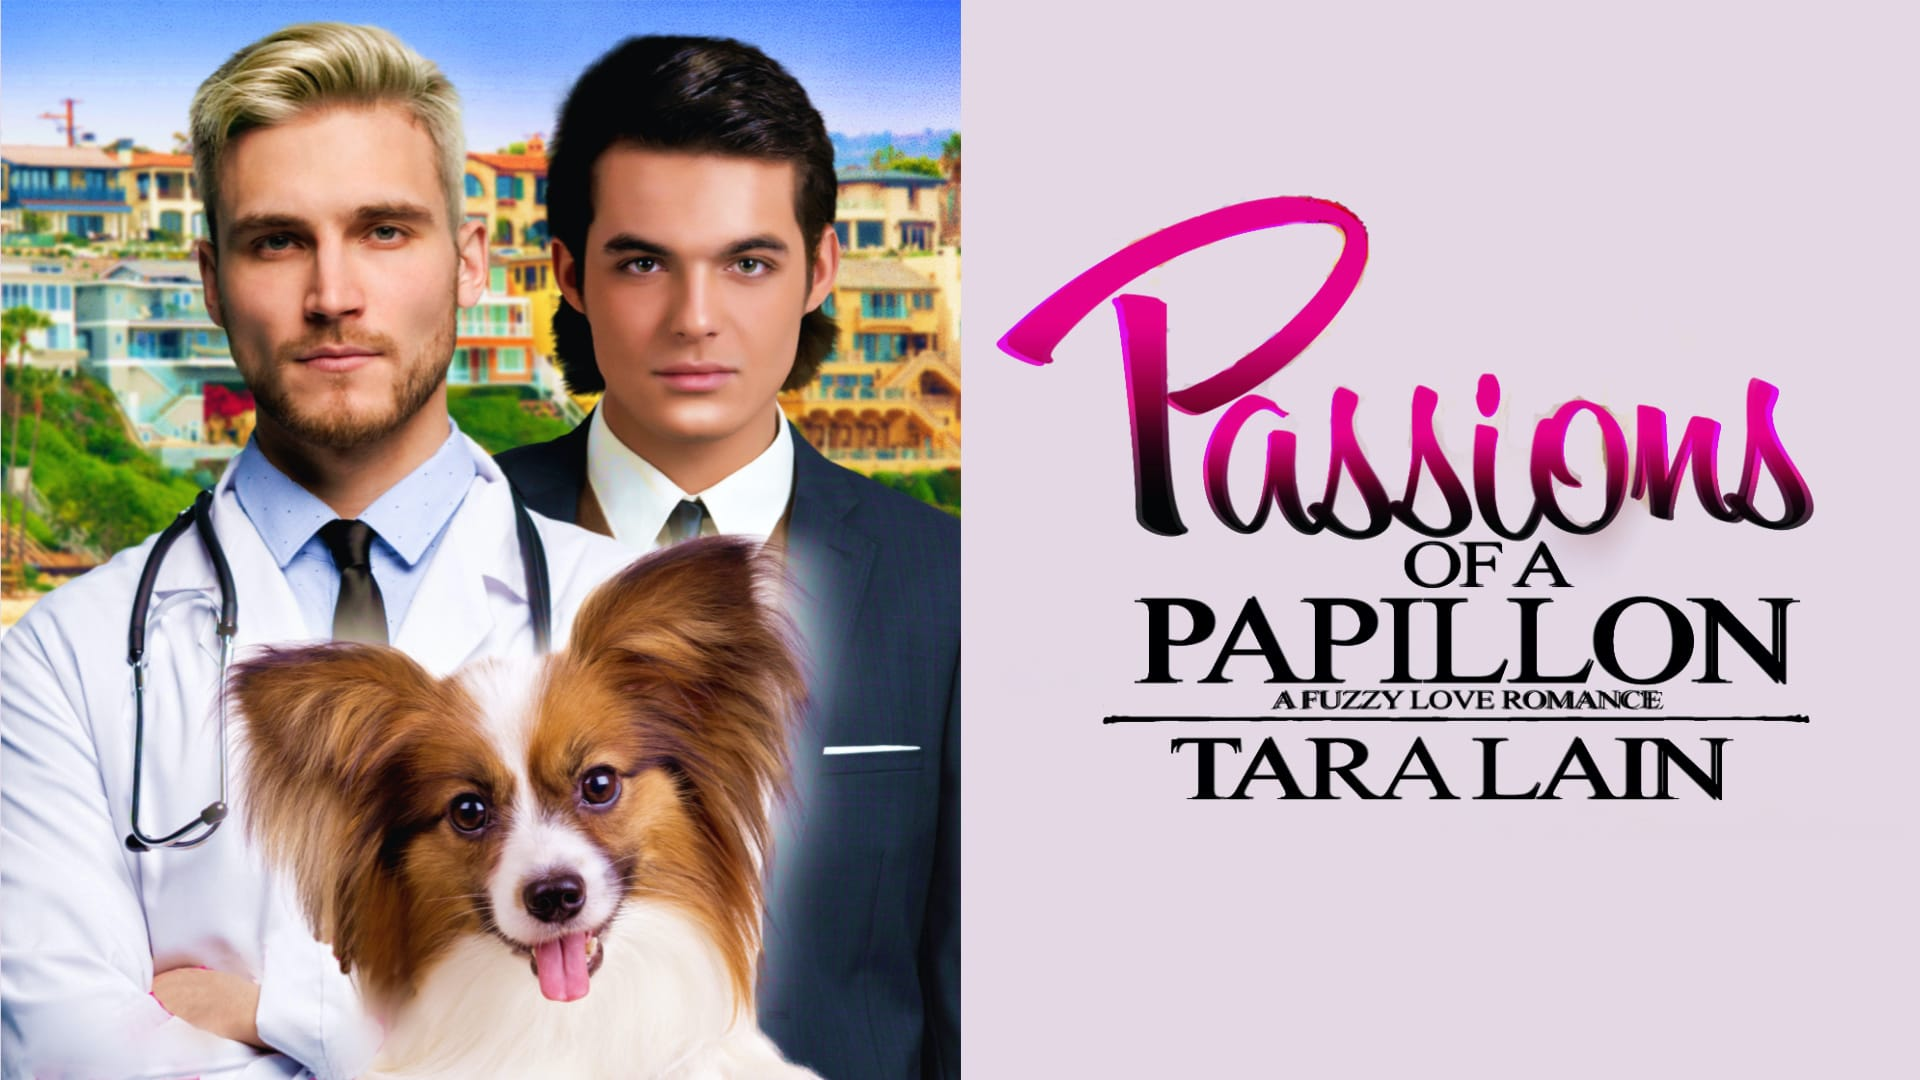 Passions of a Papillon